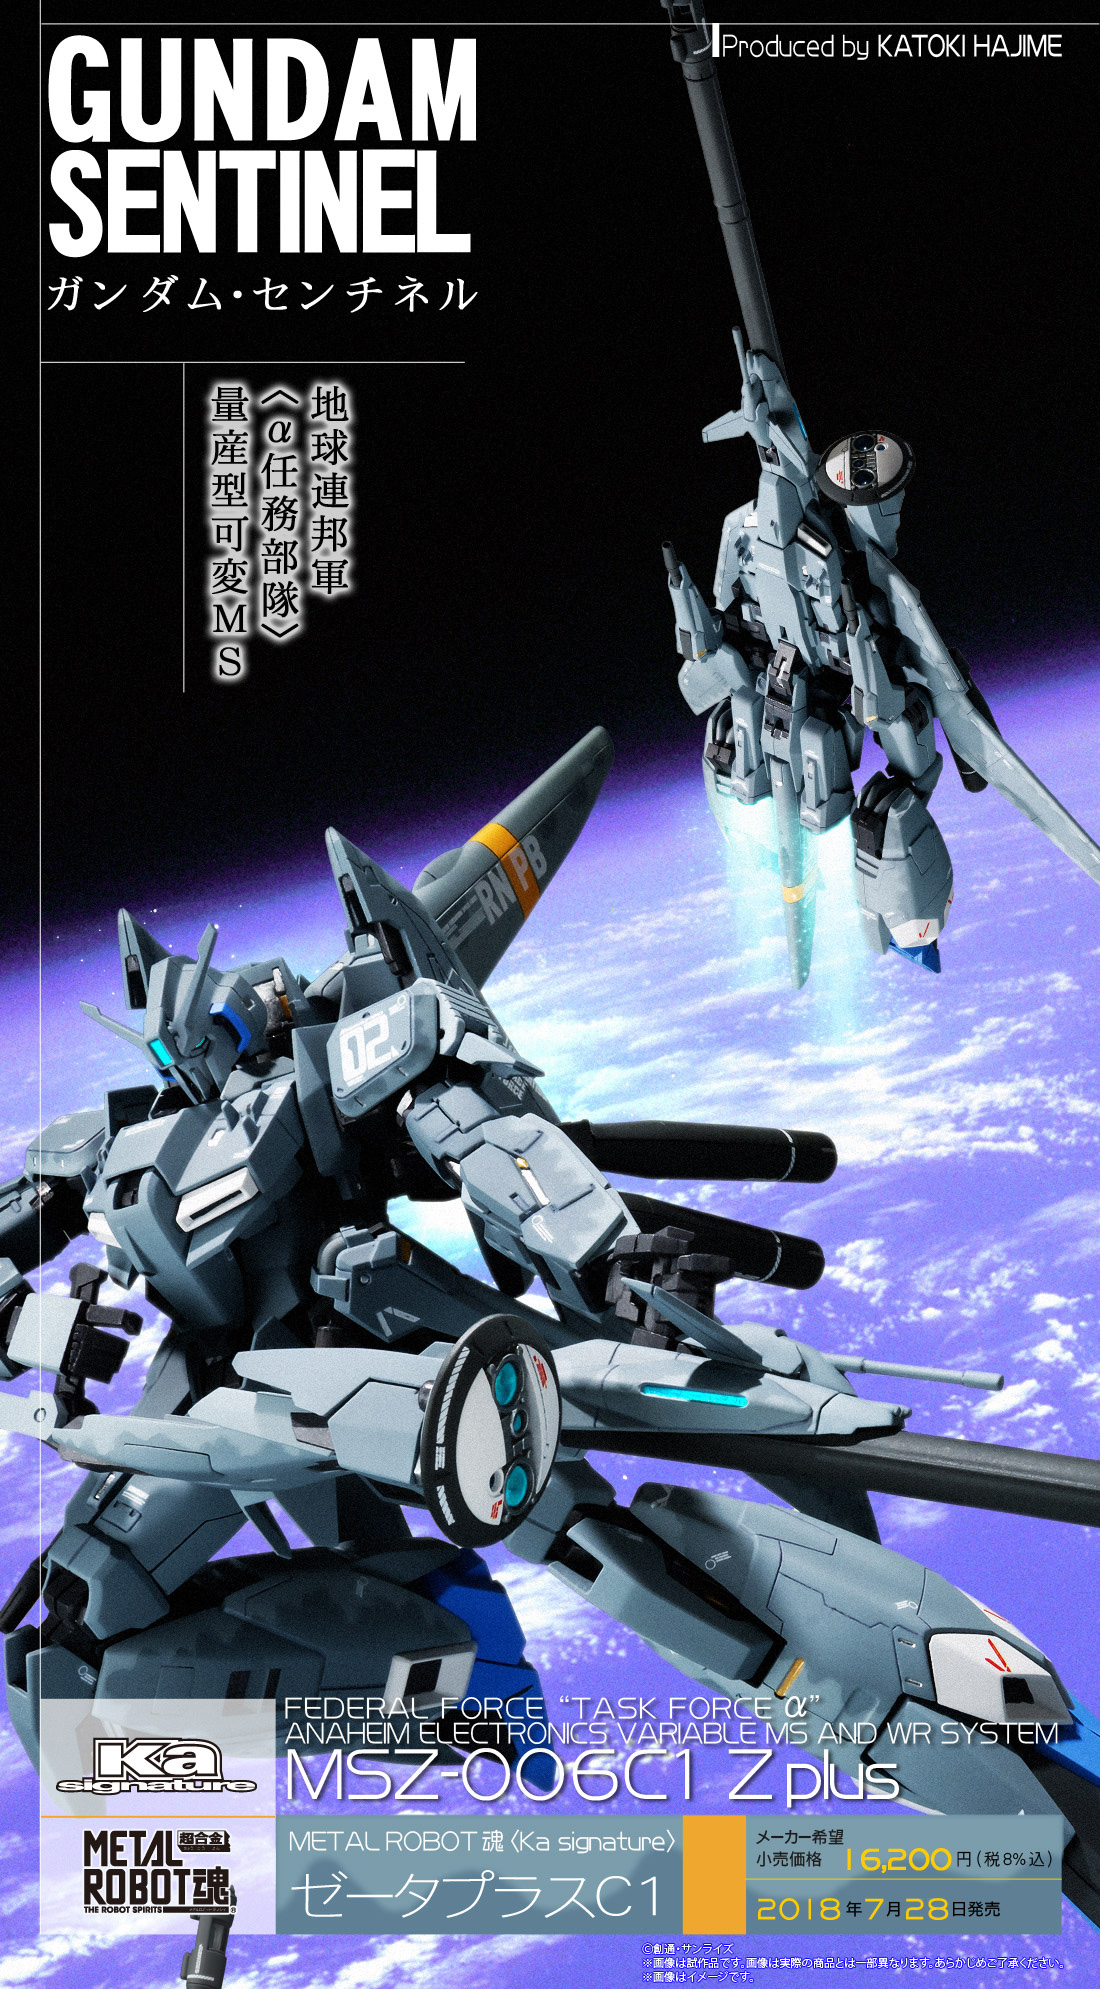 METAL ROBOT SPIRIT(KA SIGNATURE)  <SIDE MS> ZETA PLUS C1